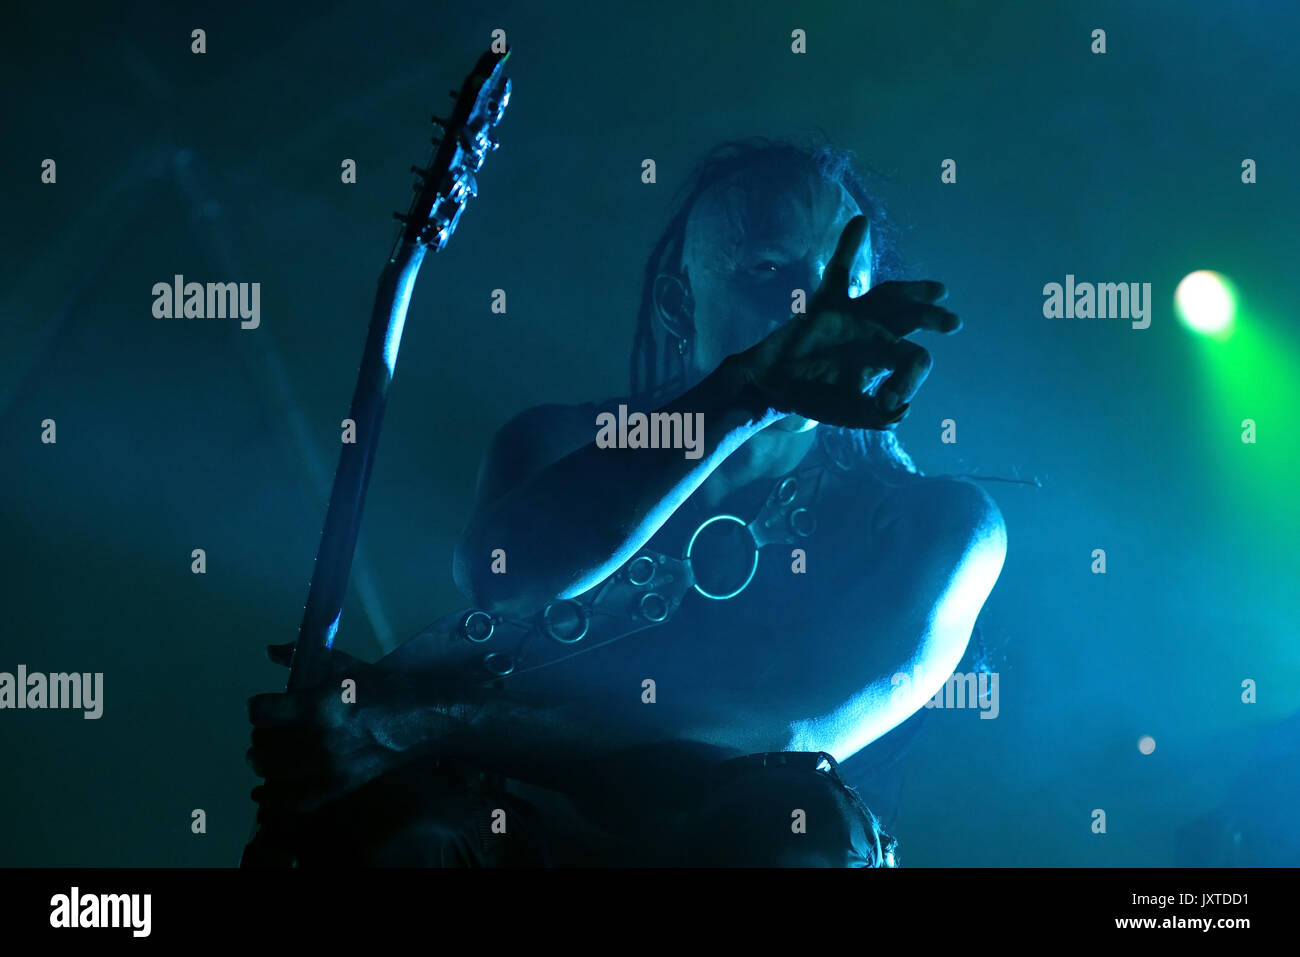 BARCELONA - JUN 1: Skinny Puppy (industrial music band) perform in concert at Primavera Sound 2017 Festival on June 1, 2017 in Barcelona, Spain. - Stock Image